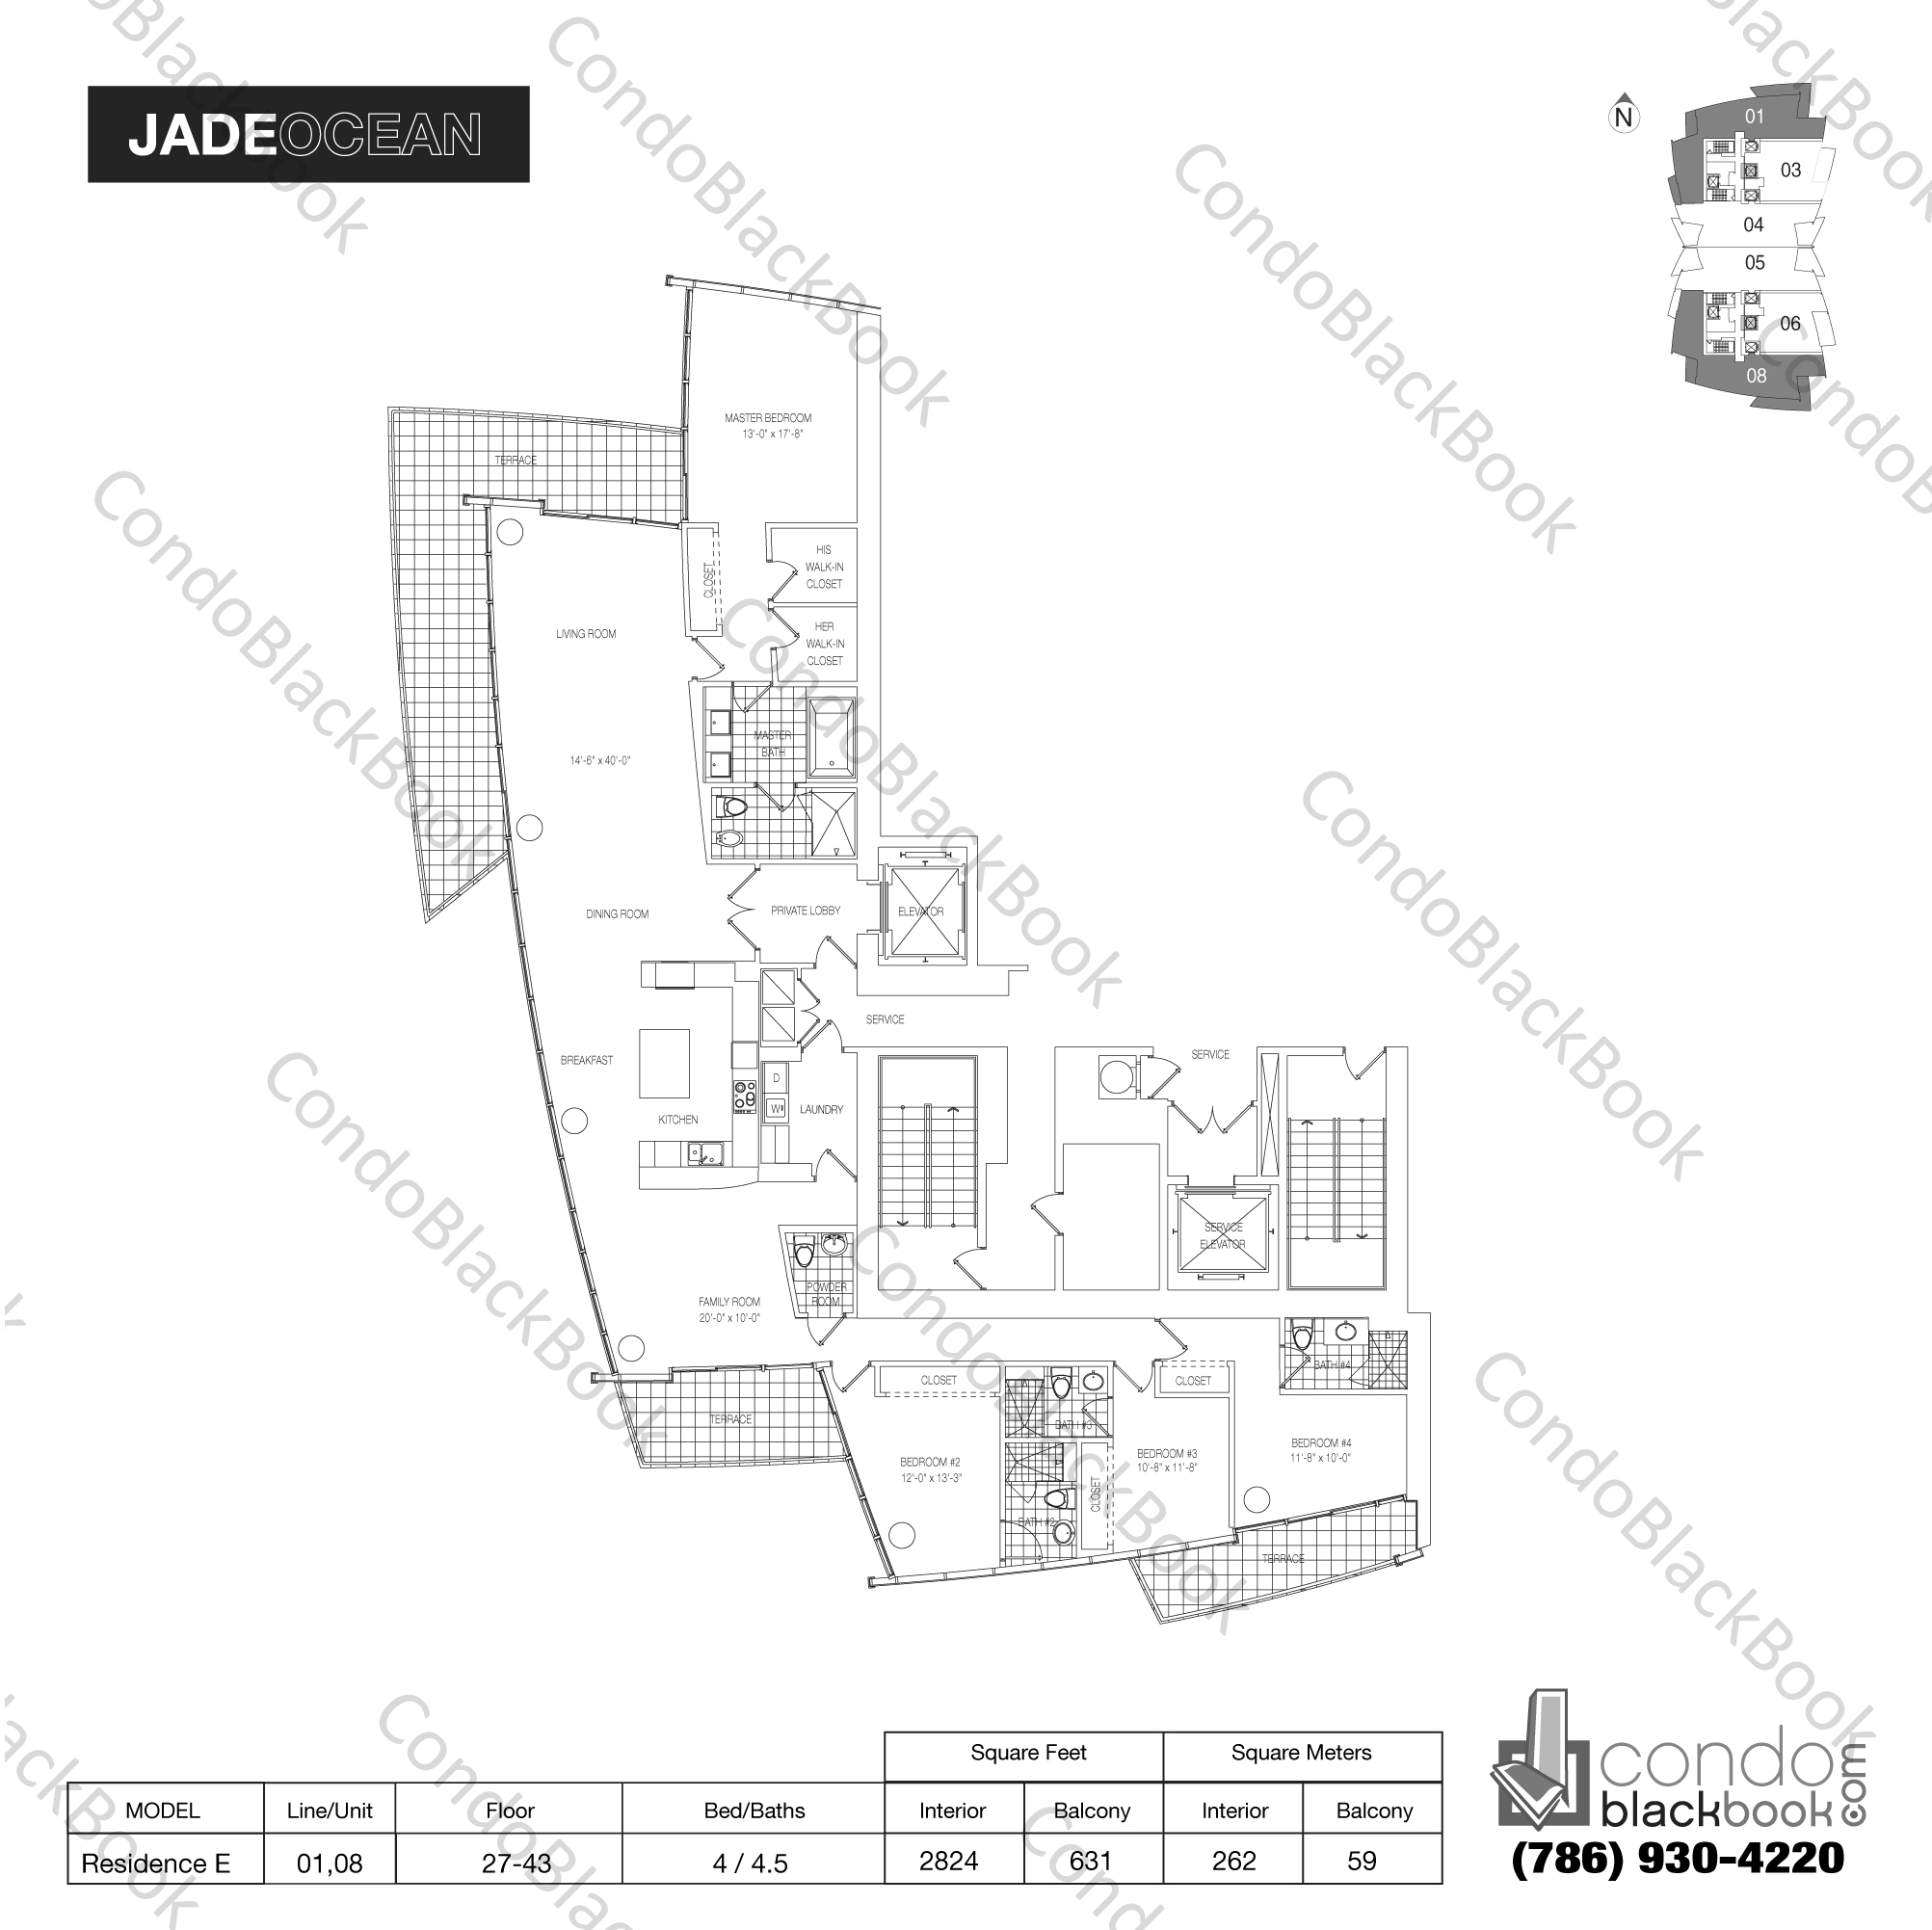 Floor plan for Jade Ocean Sunny Isles Beach, model Residence E, line 01,08, 4 / 4.5 bedrooms, 2824 sq ft